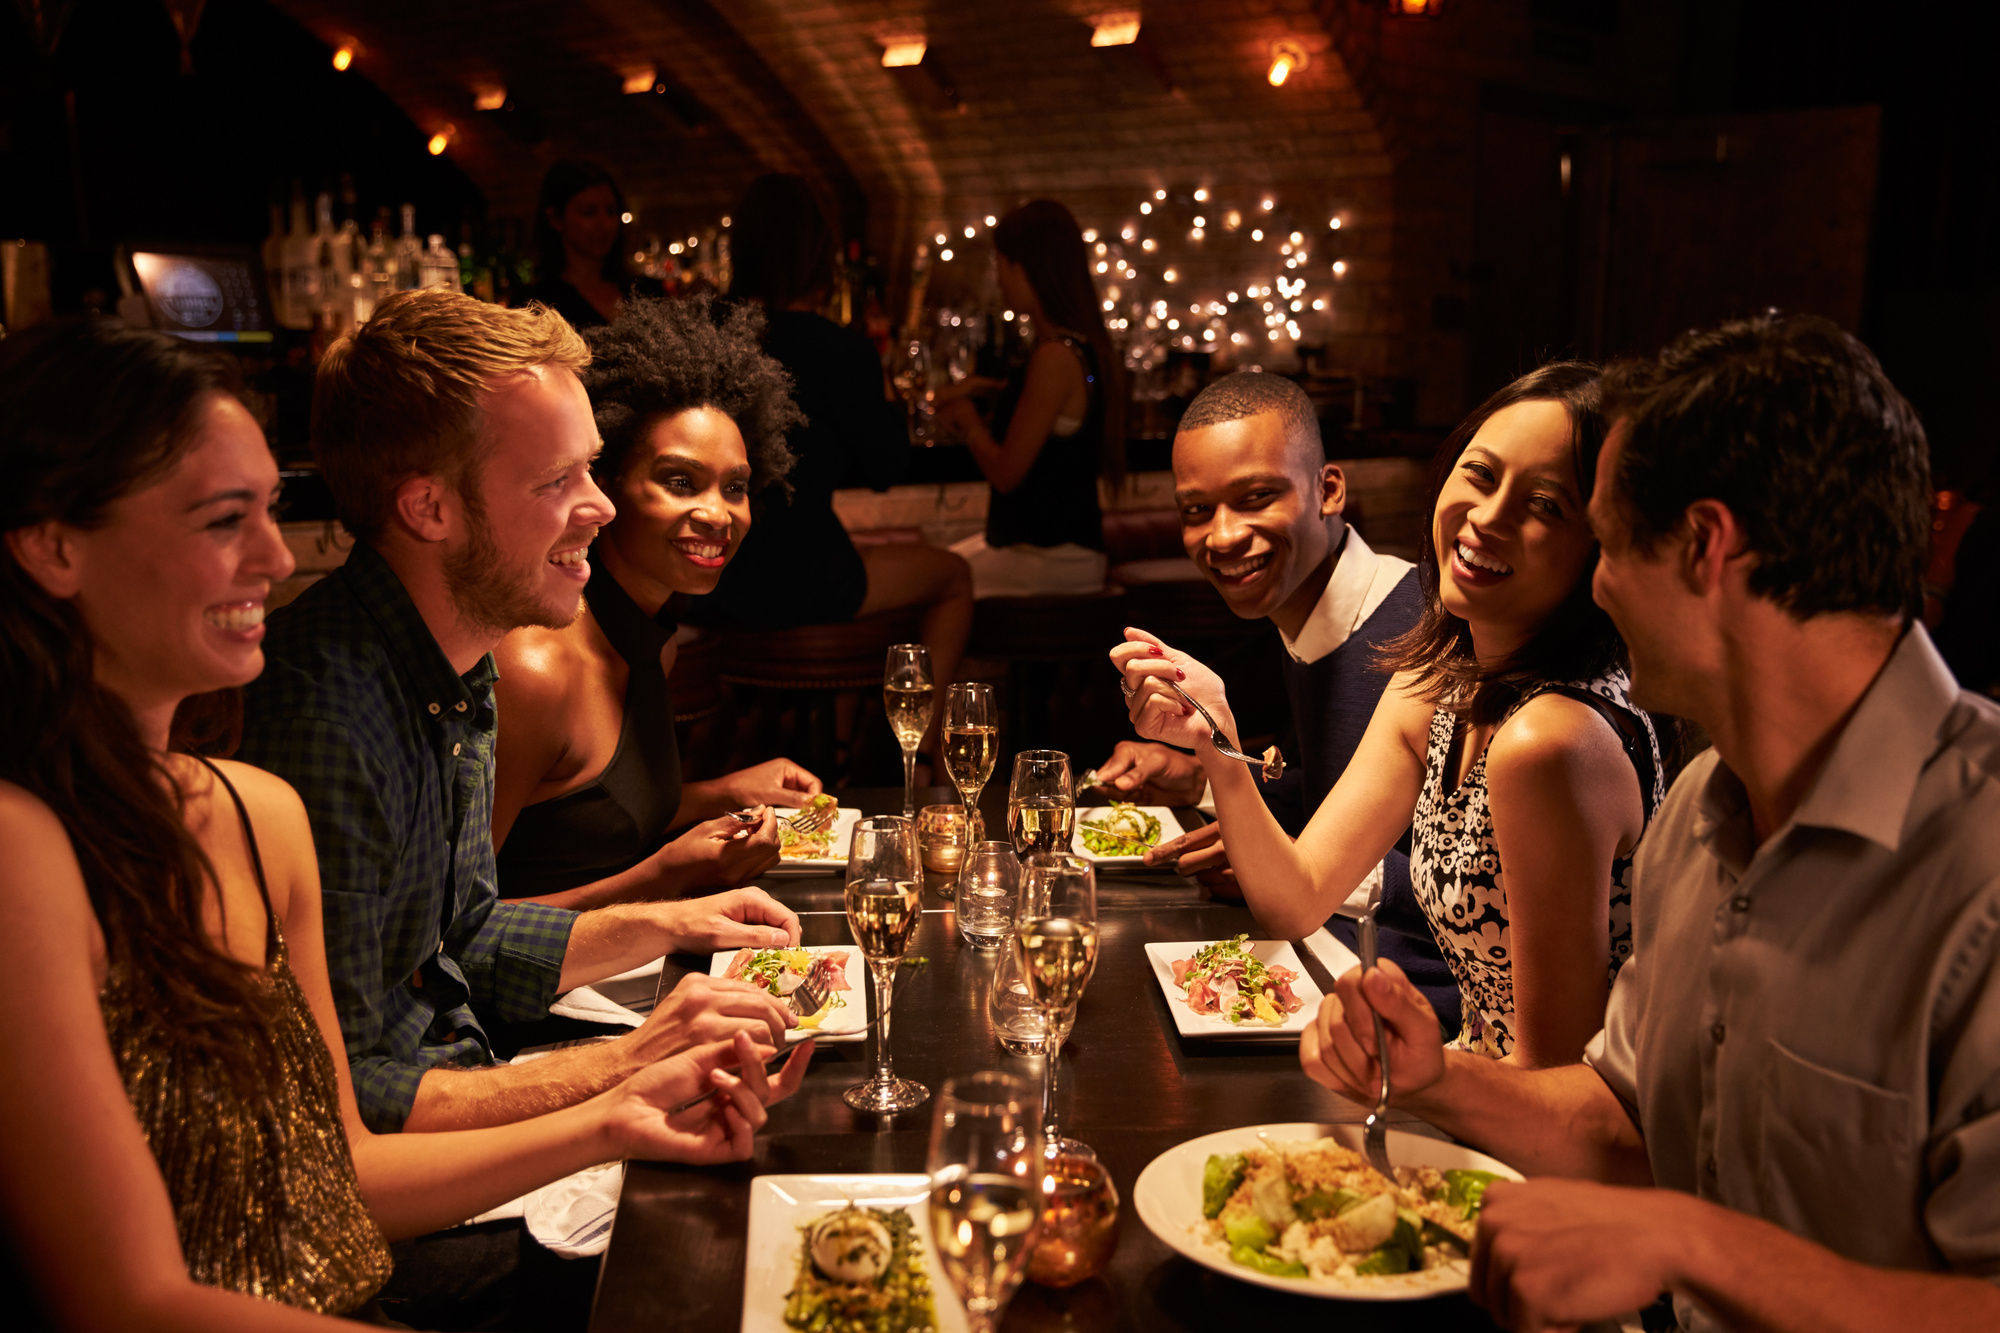 What Are The Best Restaurants In Grapevine Tx